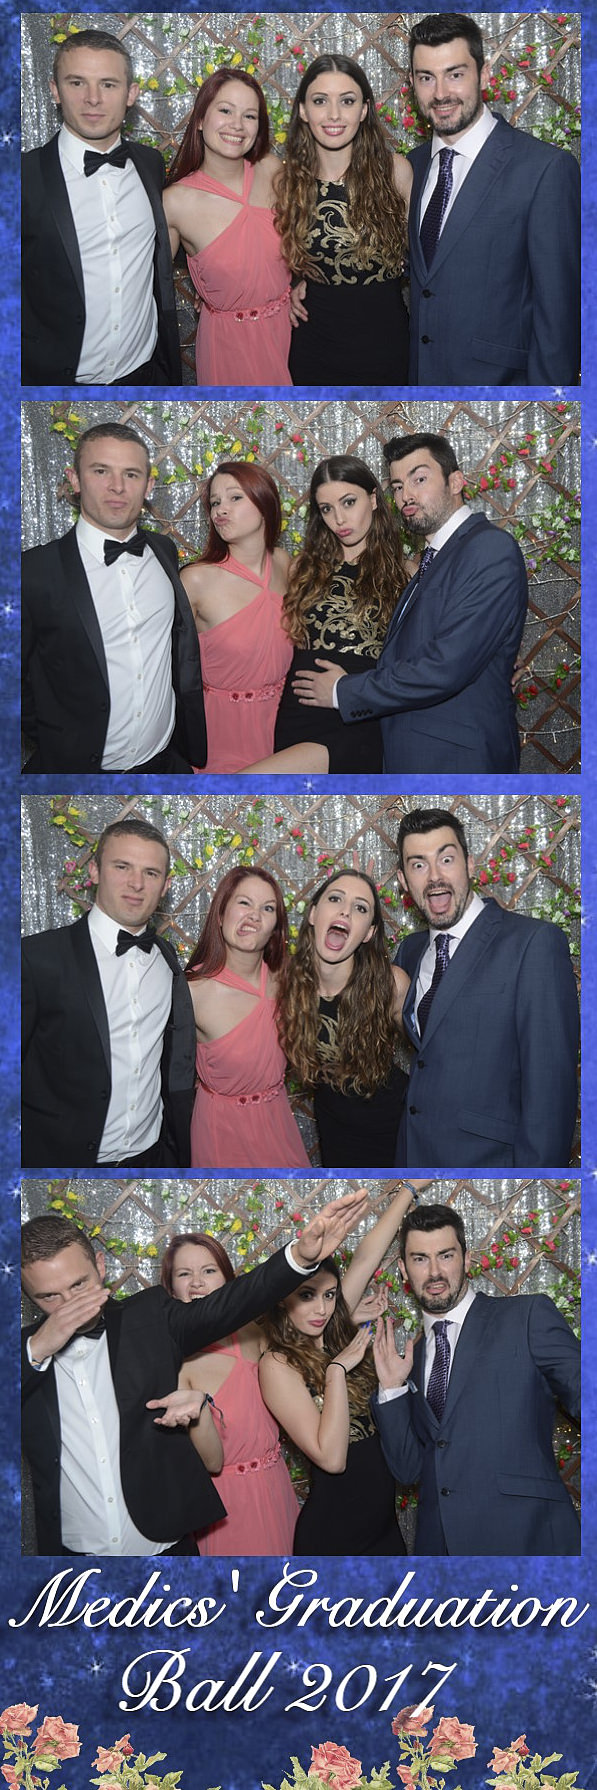 Medics Graduation Ball 2017 Medics Ball 2017 - TheSelfieLab.co.ukDS214918.jpg